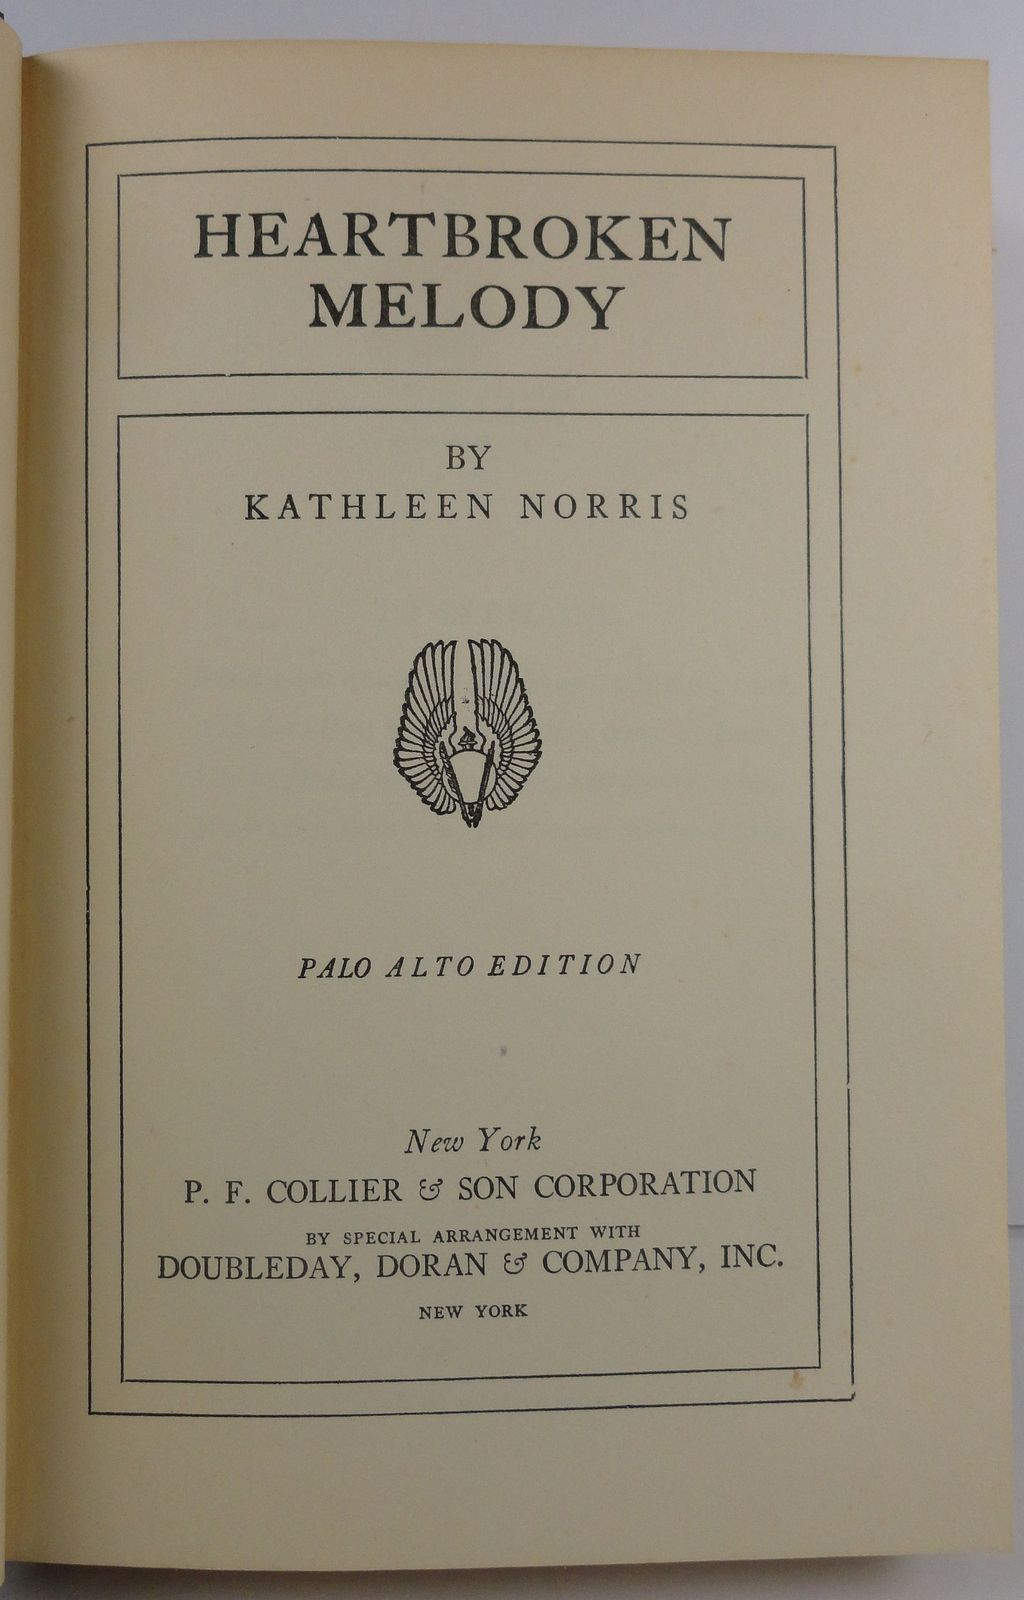 Heartbroken Melody by Kathleen Norris 1938 P. F. Collier